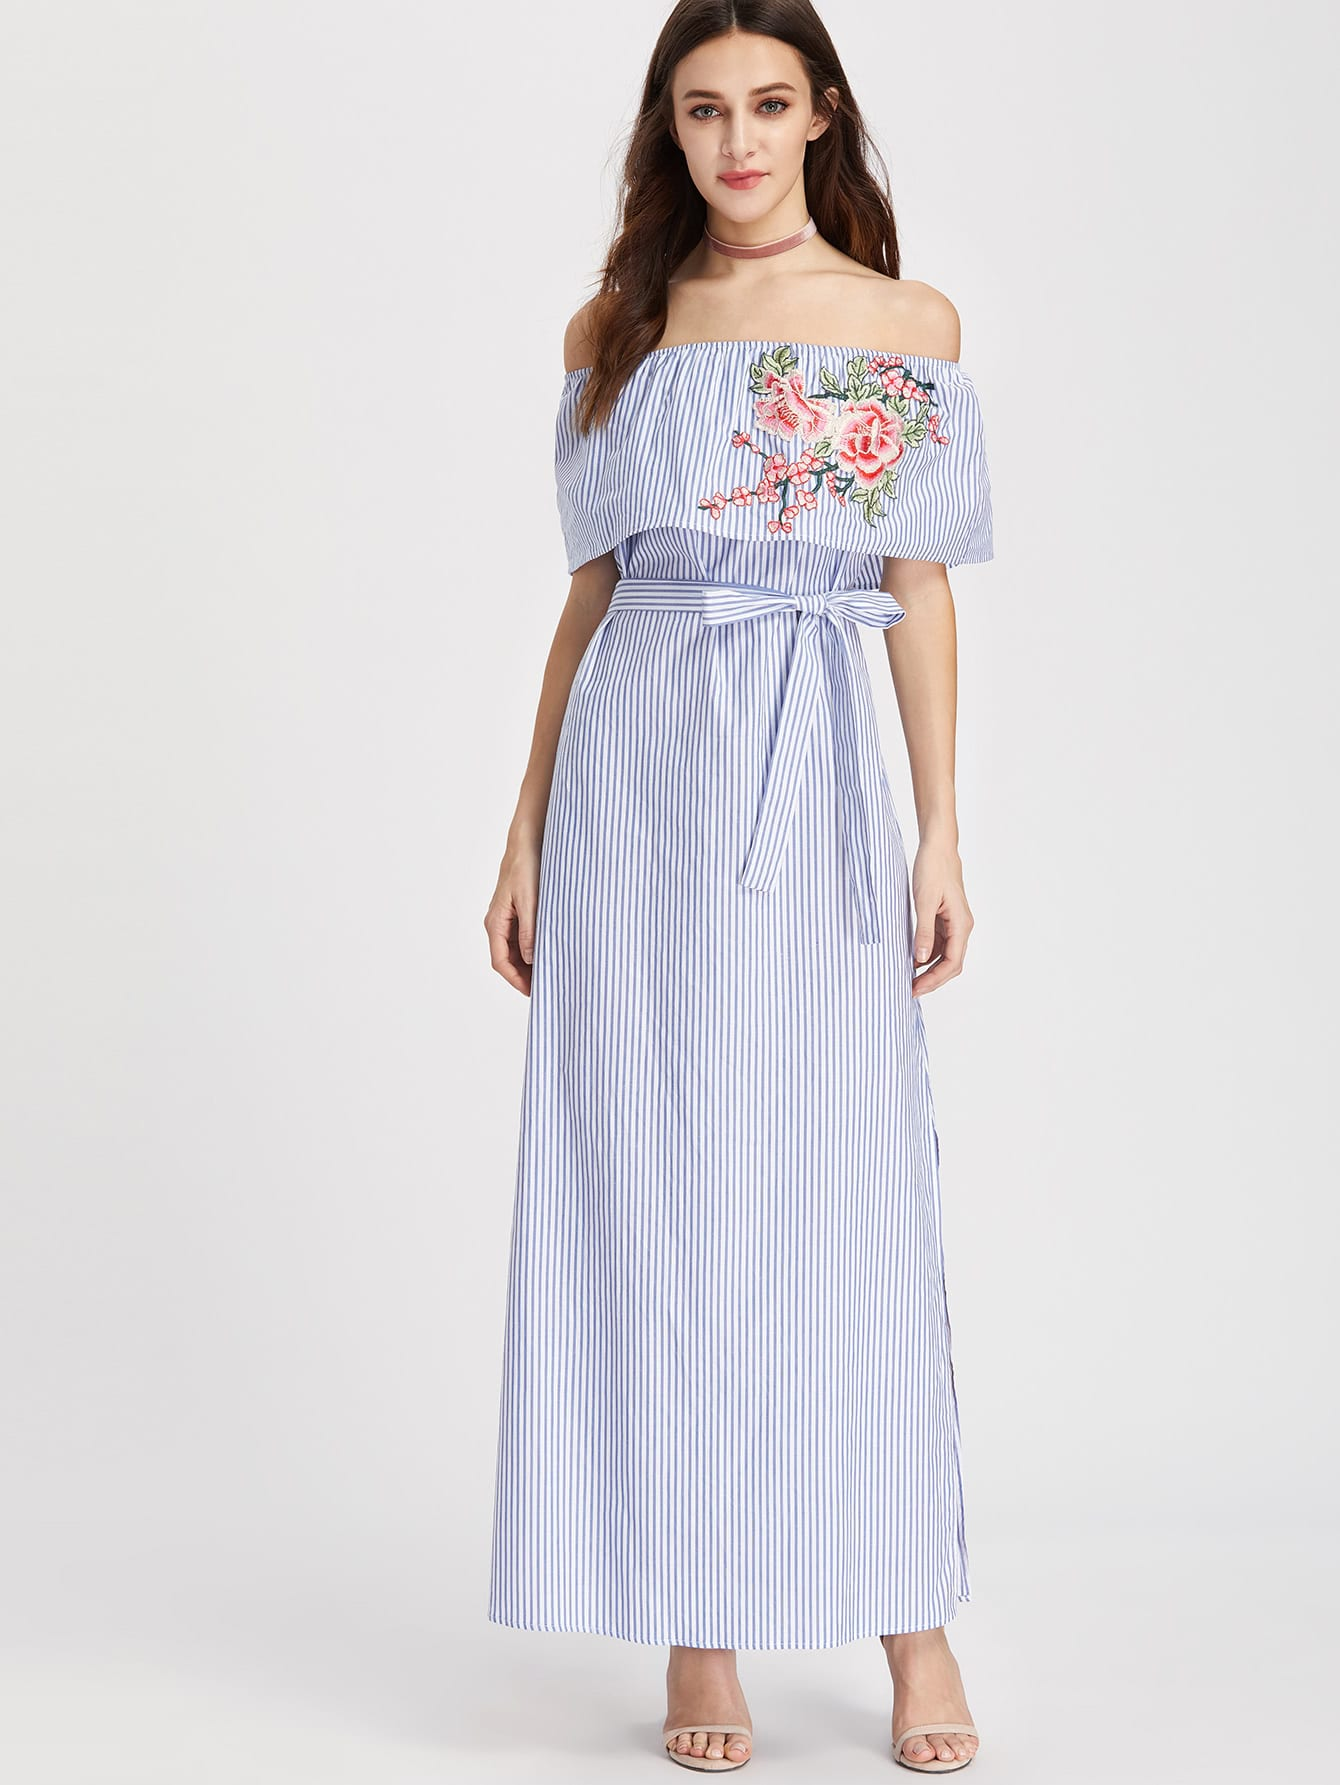 Embroidered Flounce Off Shoulder Belted Striped Dress chic off the shoulder striped floral embroidered midi dress for women